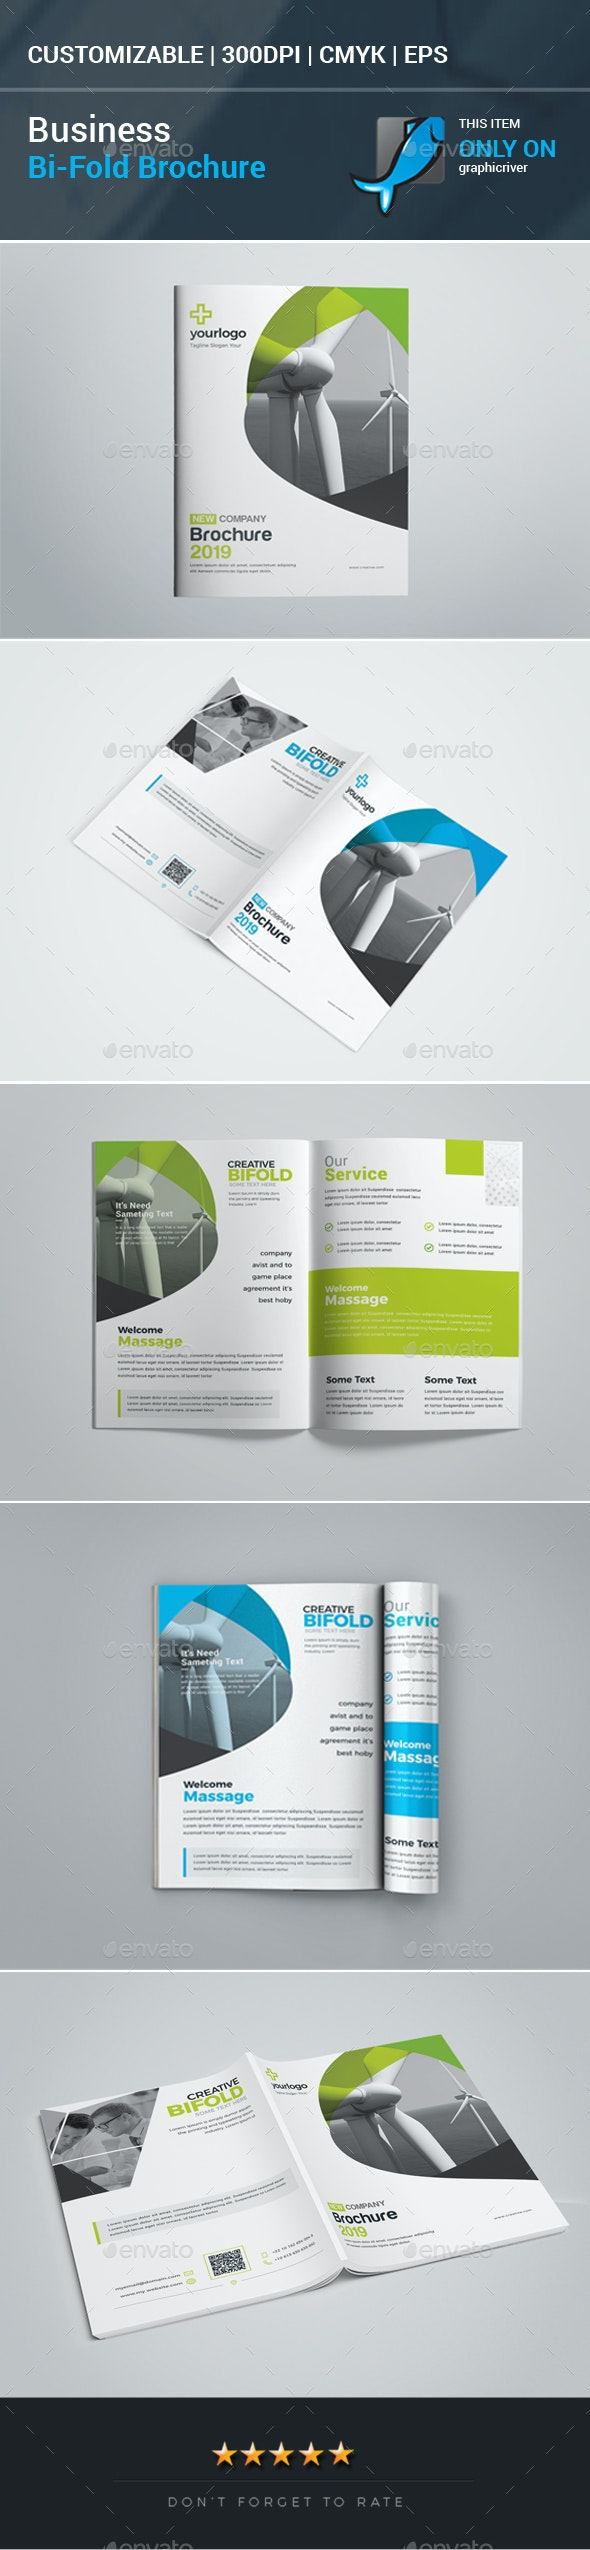 Business Bifold Brochure - Corporate Brochures